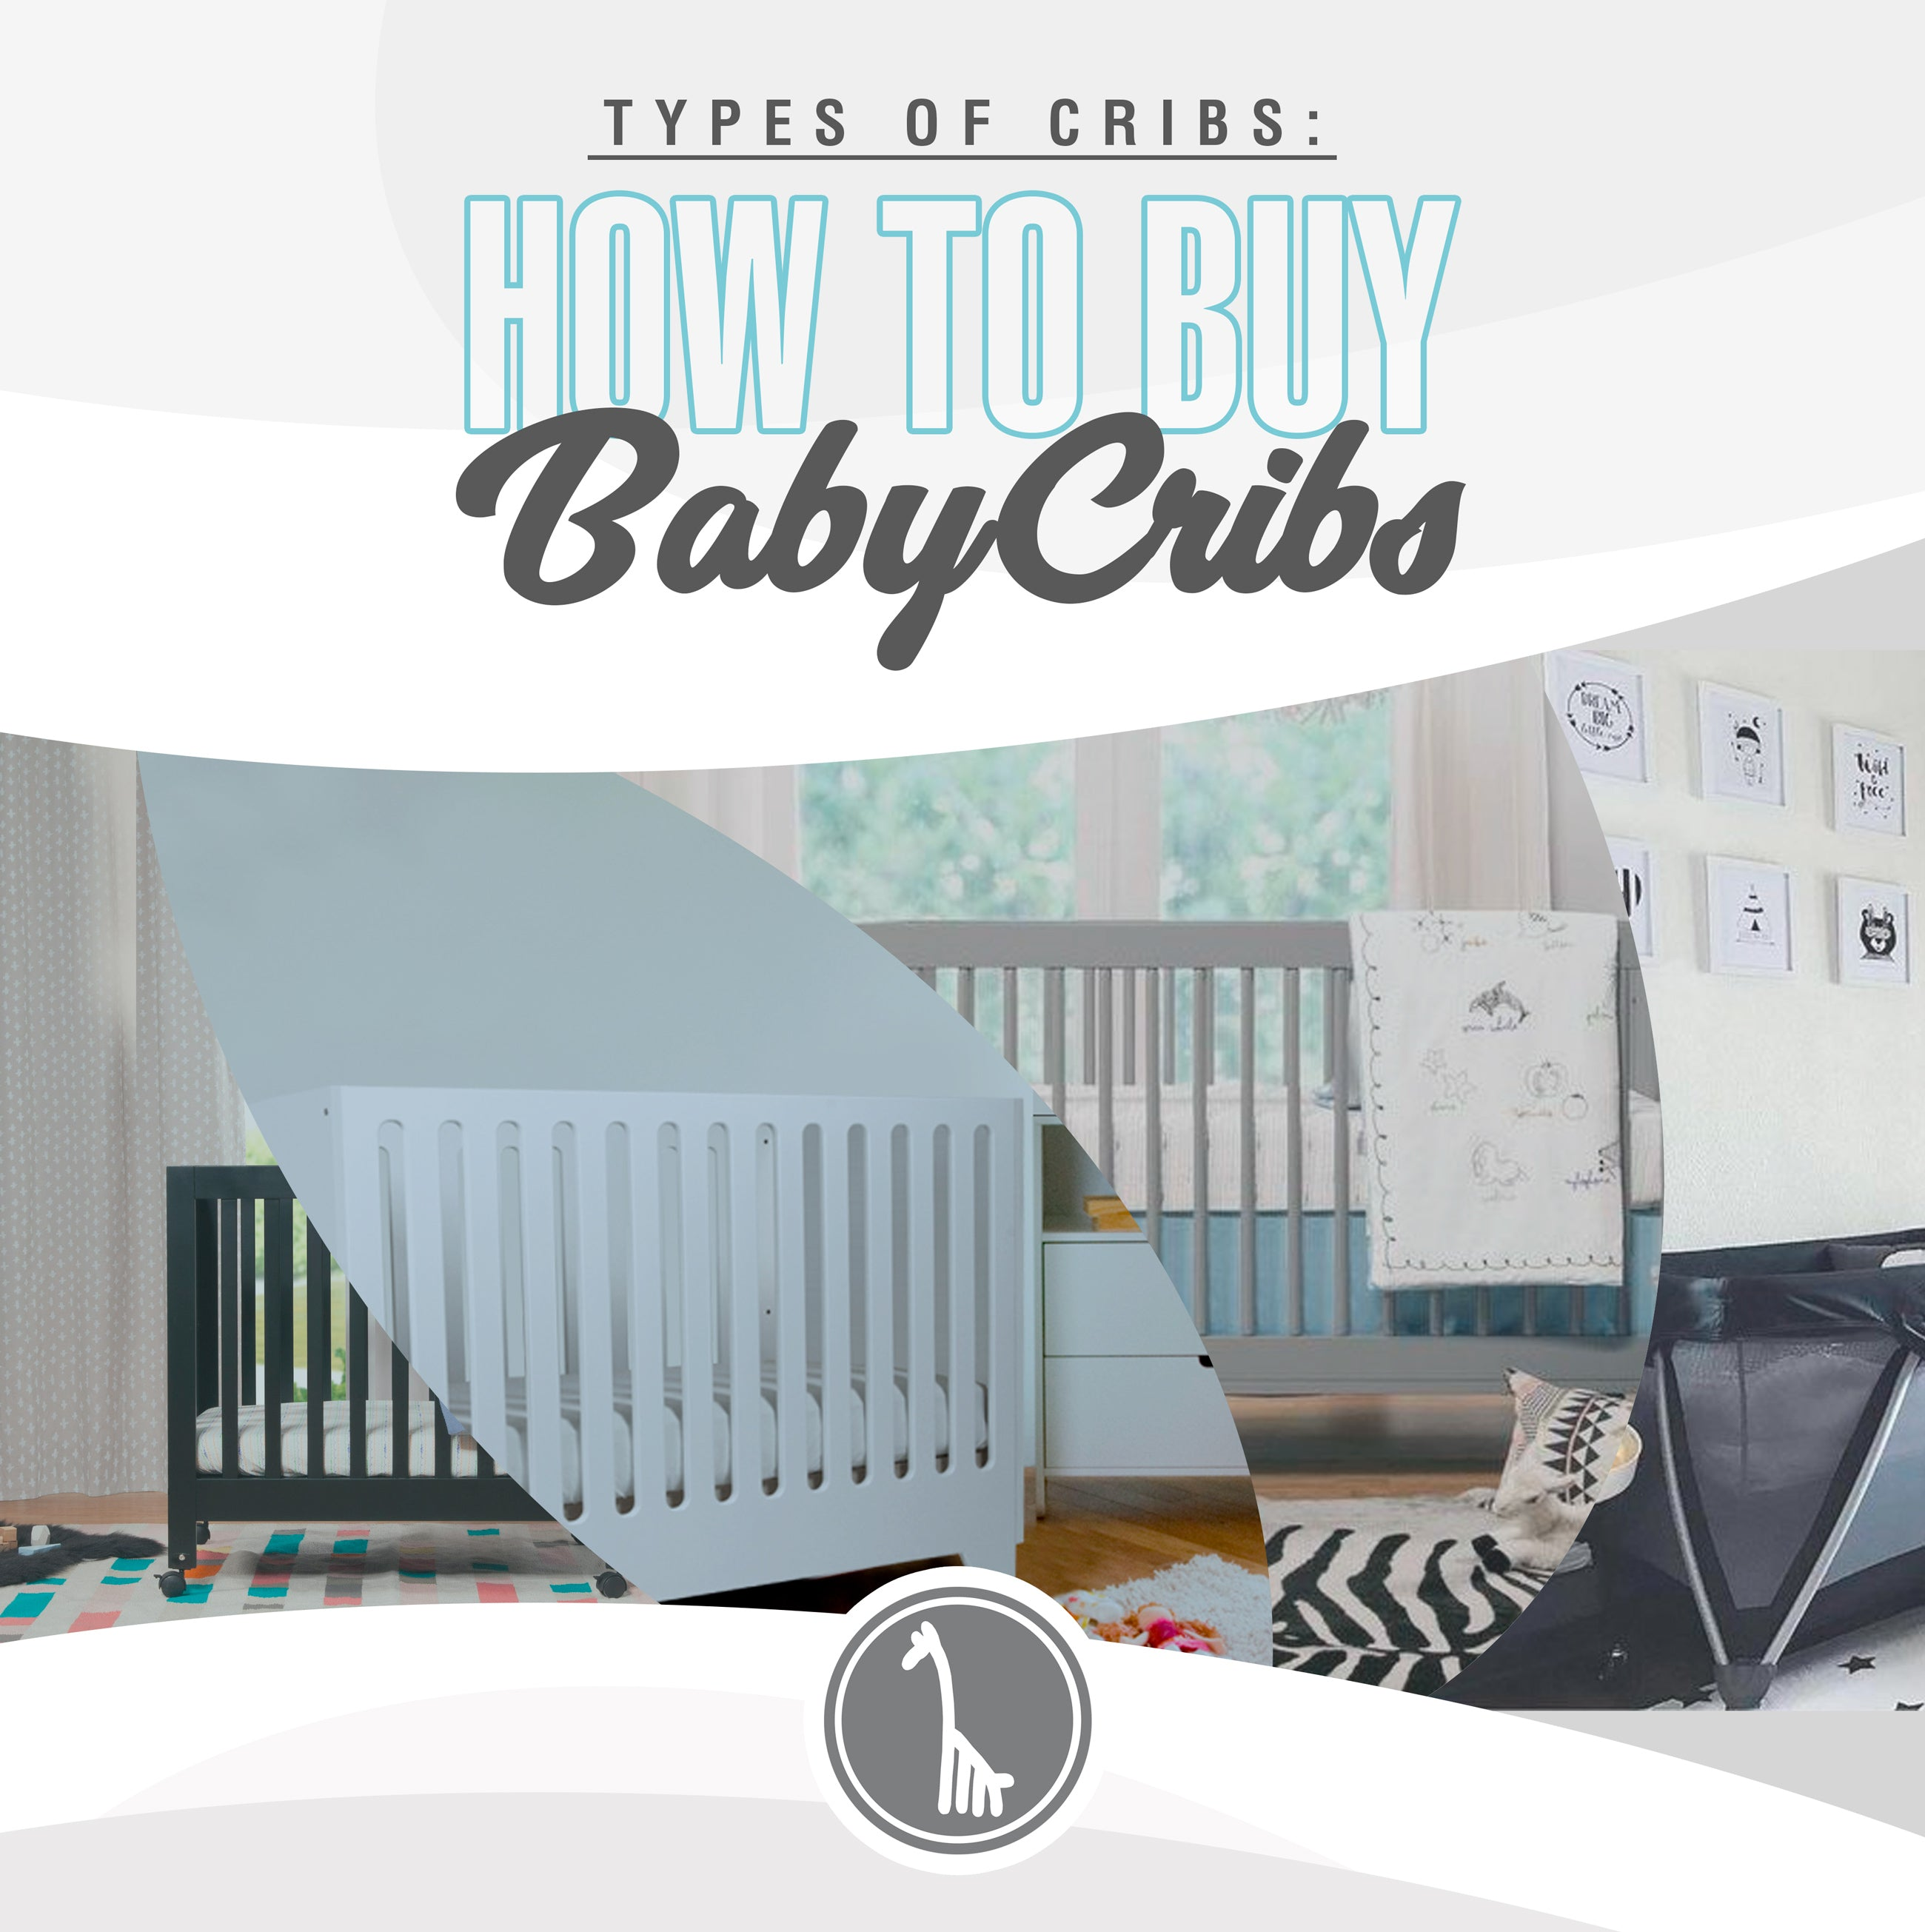 Typs of Cribs: How to Buy Baby Cribs